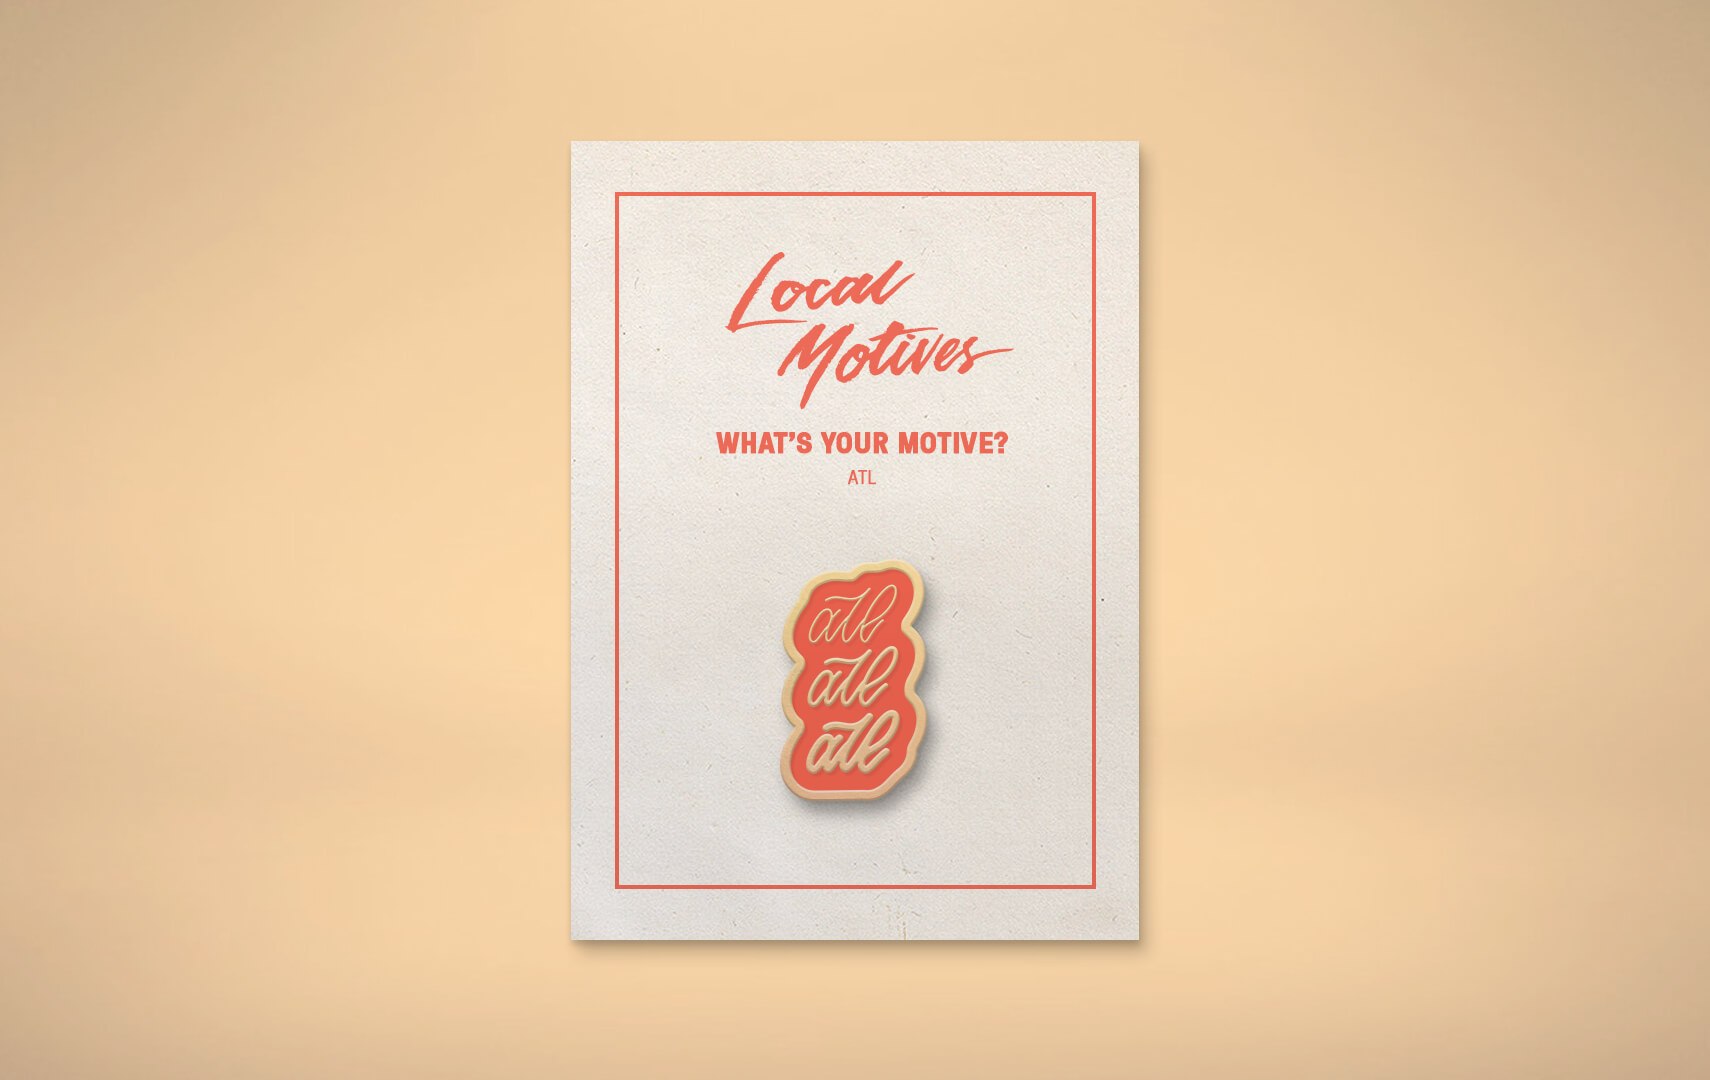 RBS_Local_Motives_Enamel_Pin